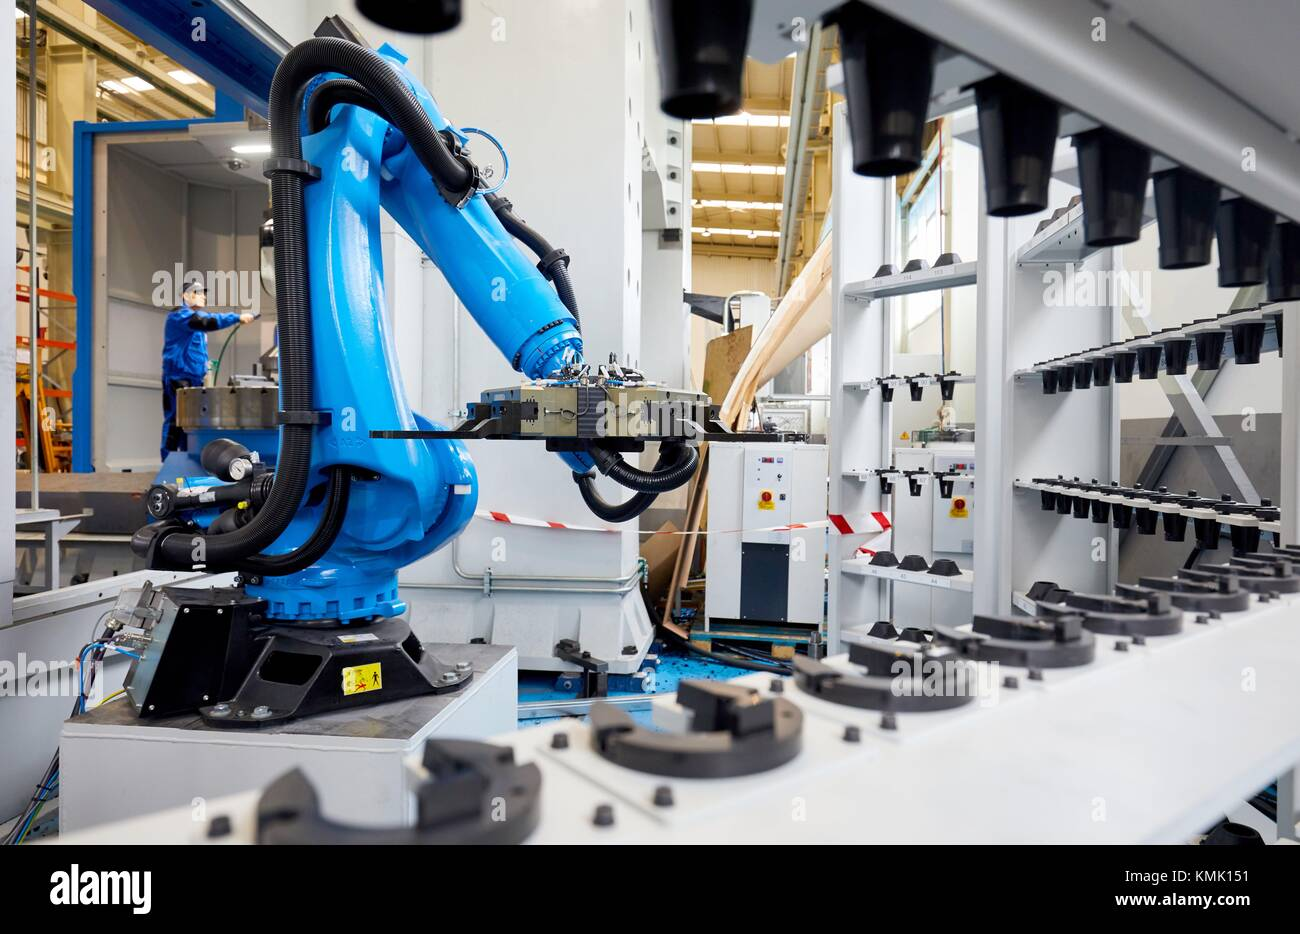 robotics in manufacturing According a pwc survey of manufacturers, 59% of are already currently using some sort of robotics technology how will these robotics trends impact us manufacturers and their global competitiveness.